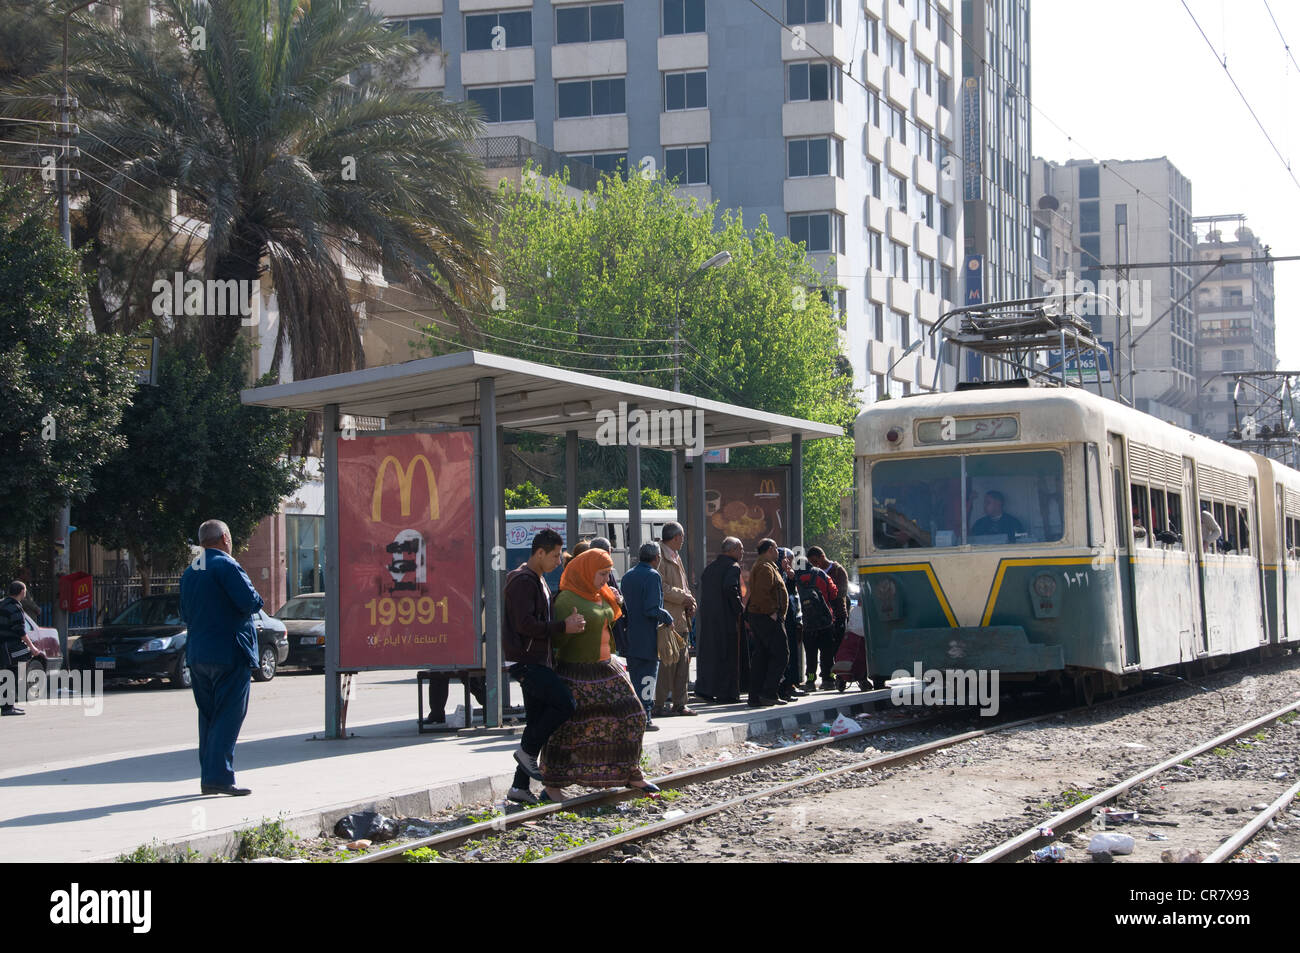 The tramway installed around 1908 is still running in Heliopolis ,Cairo - Its infrastructure needs urgent renovations - Stock Image